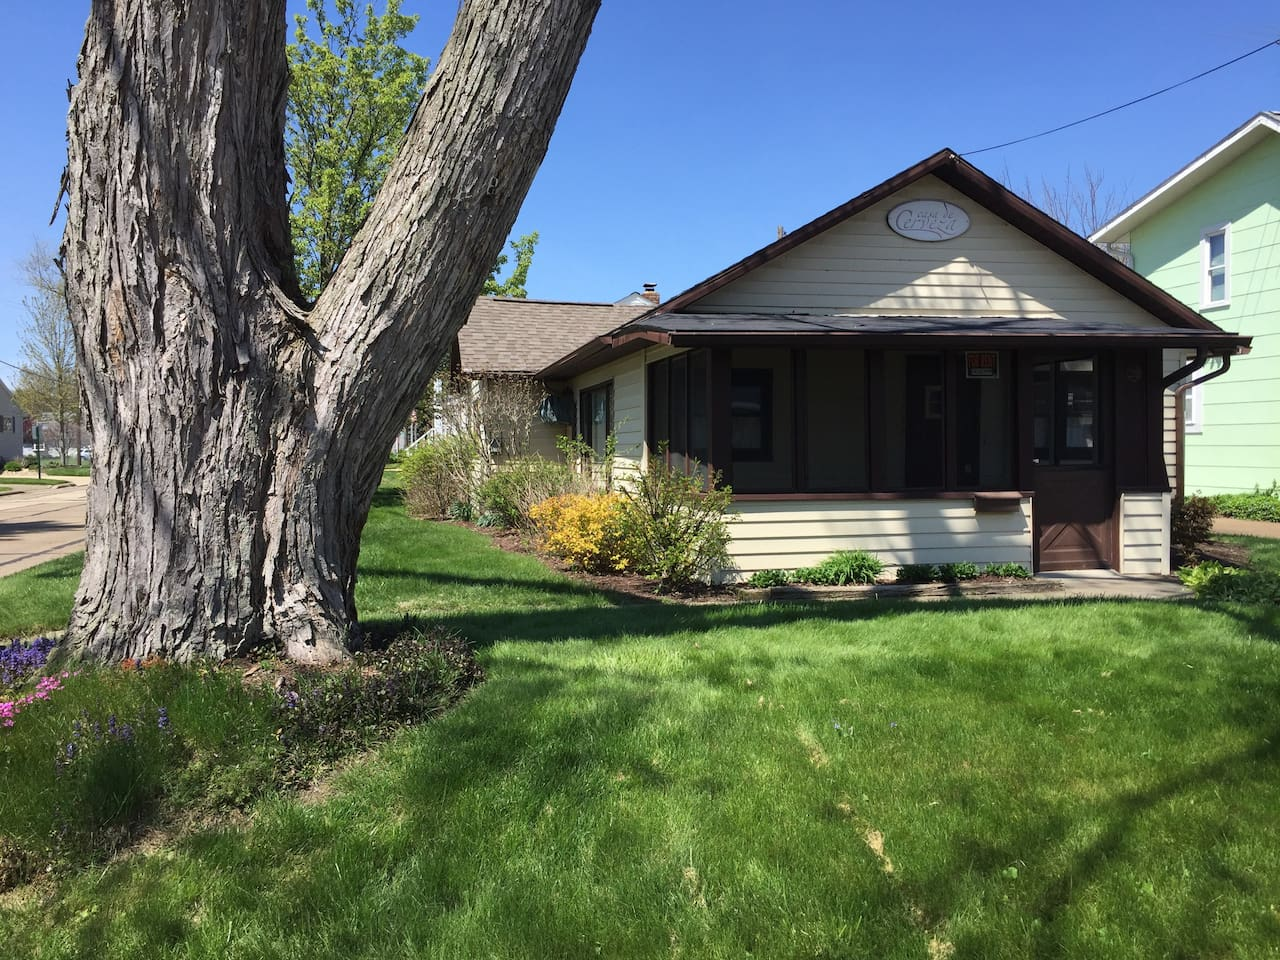 This cozy cottage is situated on a corner lot with an unattached garage in the back.